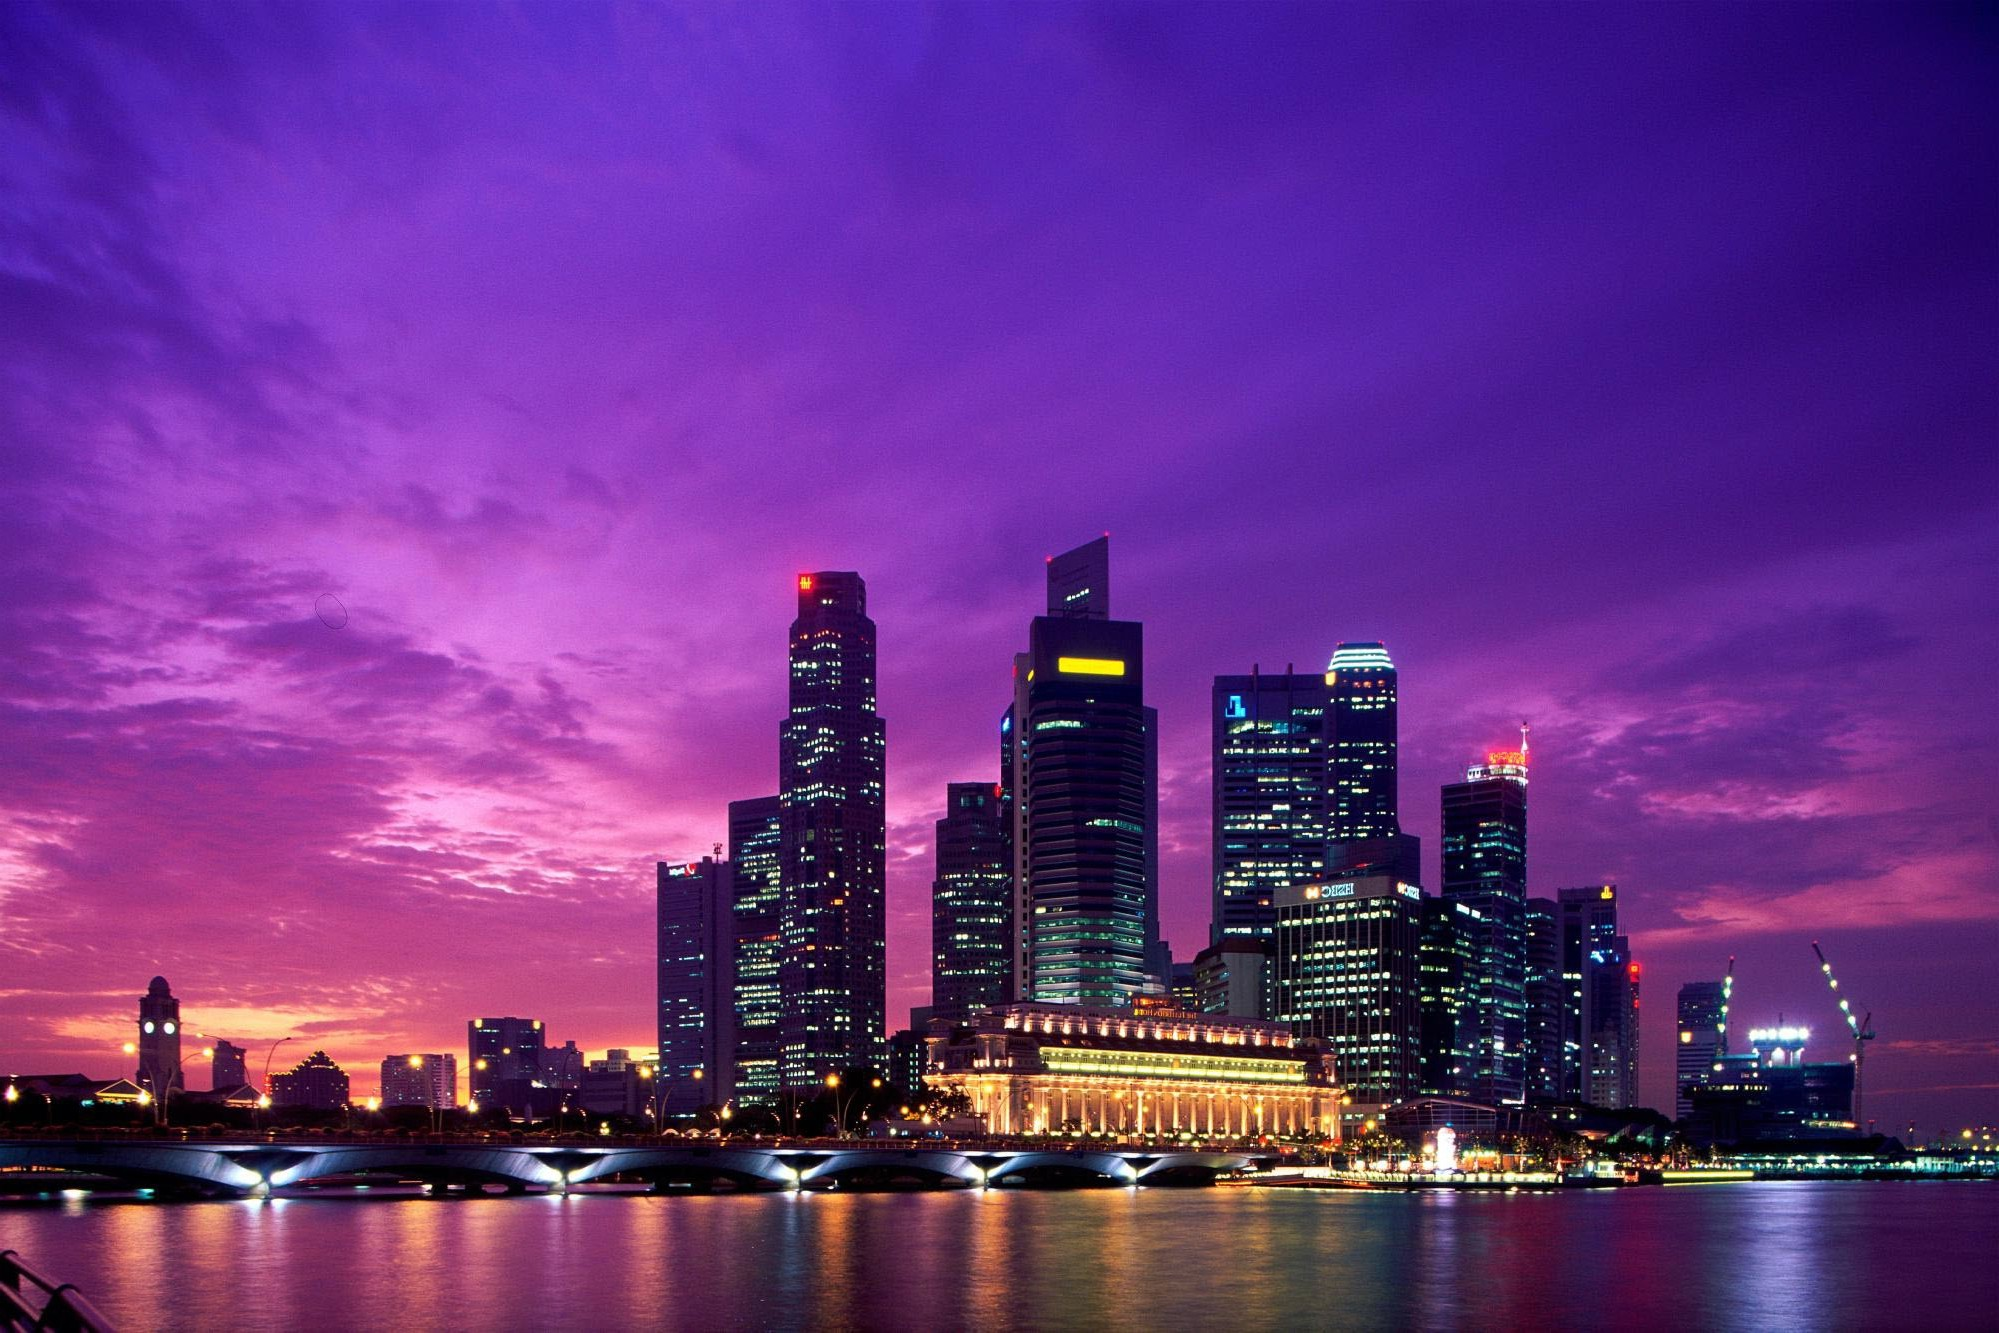 3d Wallpapers For Windows 8 Hd Free Download Singapore City Asian Architecture Dusk Skyscraper